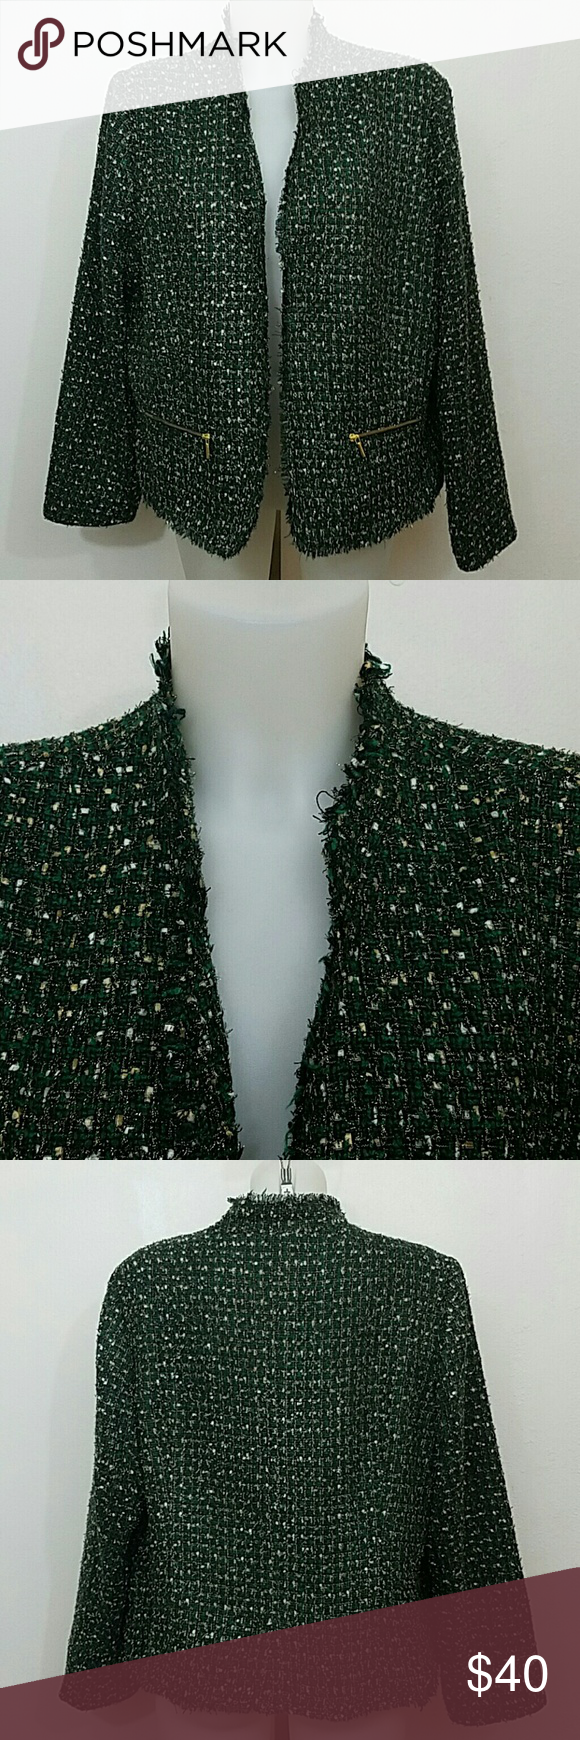 """Chico's Jacket Blazer Chico's Jacket Blazer. The edges are fringed and makes it a very beautiful Jacket. The colors are green,black,and a little good and silver.  ??Size Xlarge  ?? Condition Great  ?? No Stains ?? No Rips or Tears ?? Send me an Offer Prices are negotiable  ??Ships same day no later than the next day! ??Message me with any questions  ?? Bust 46"""" ??Length 25"""" Chico's Jackets & Coats Blazers"""